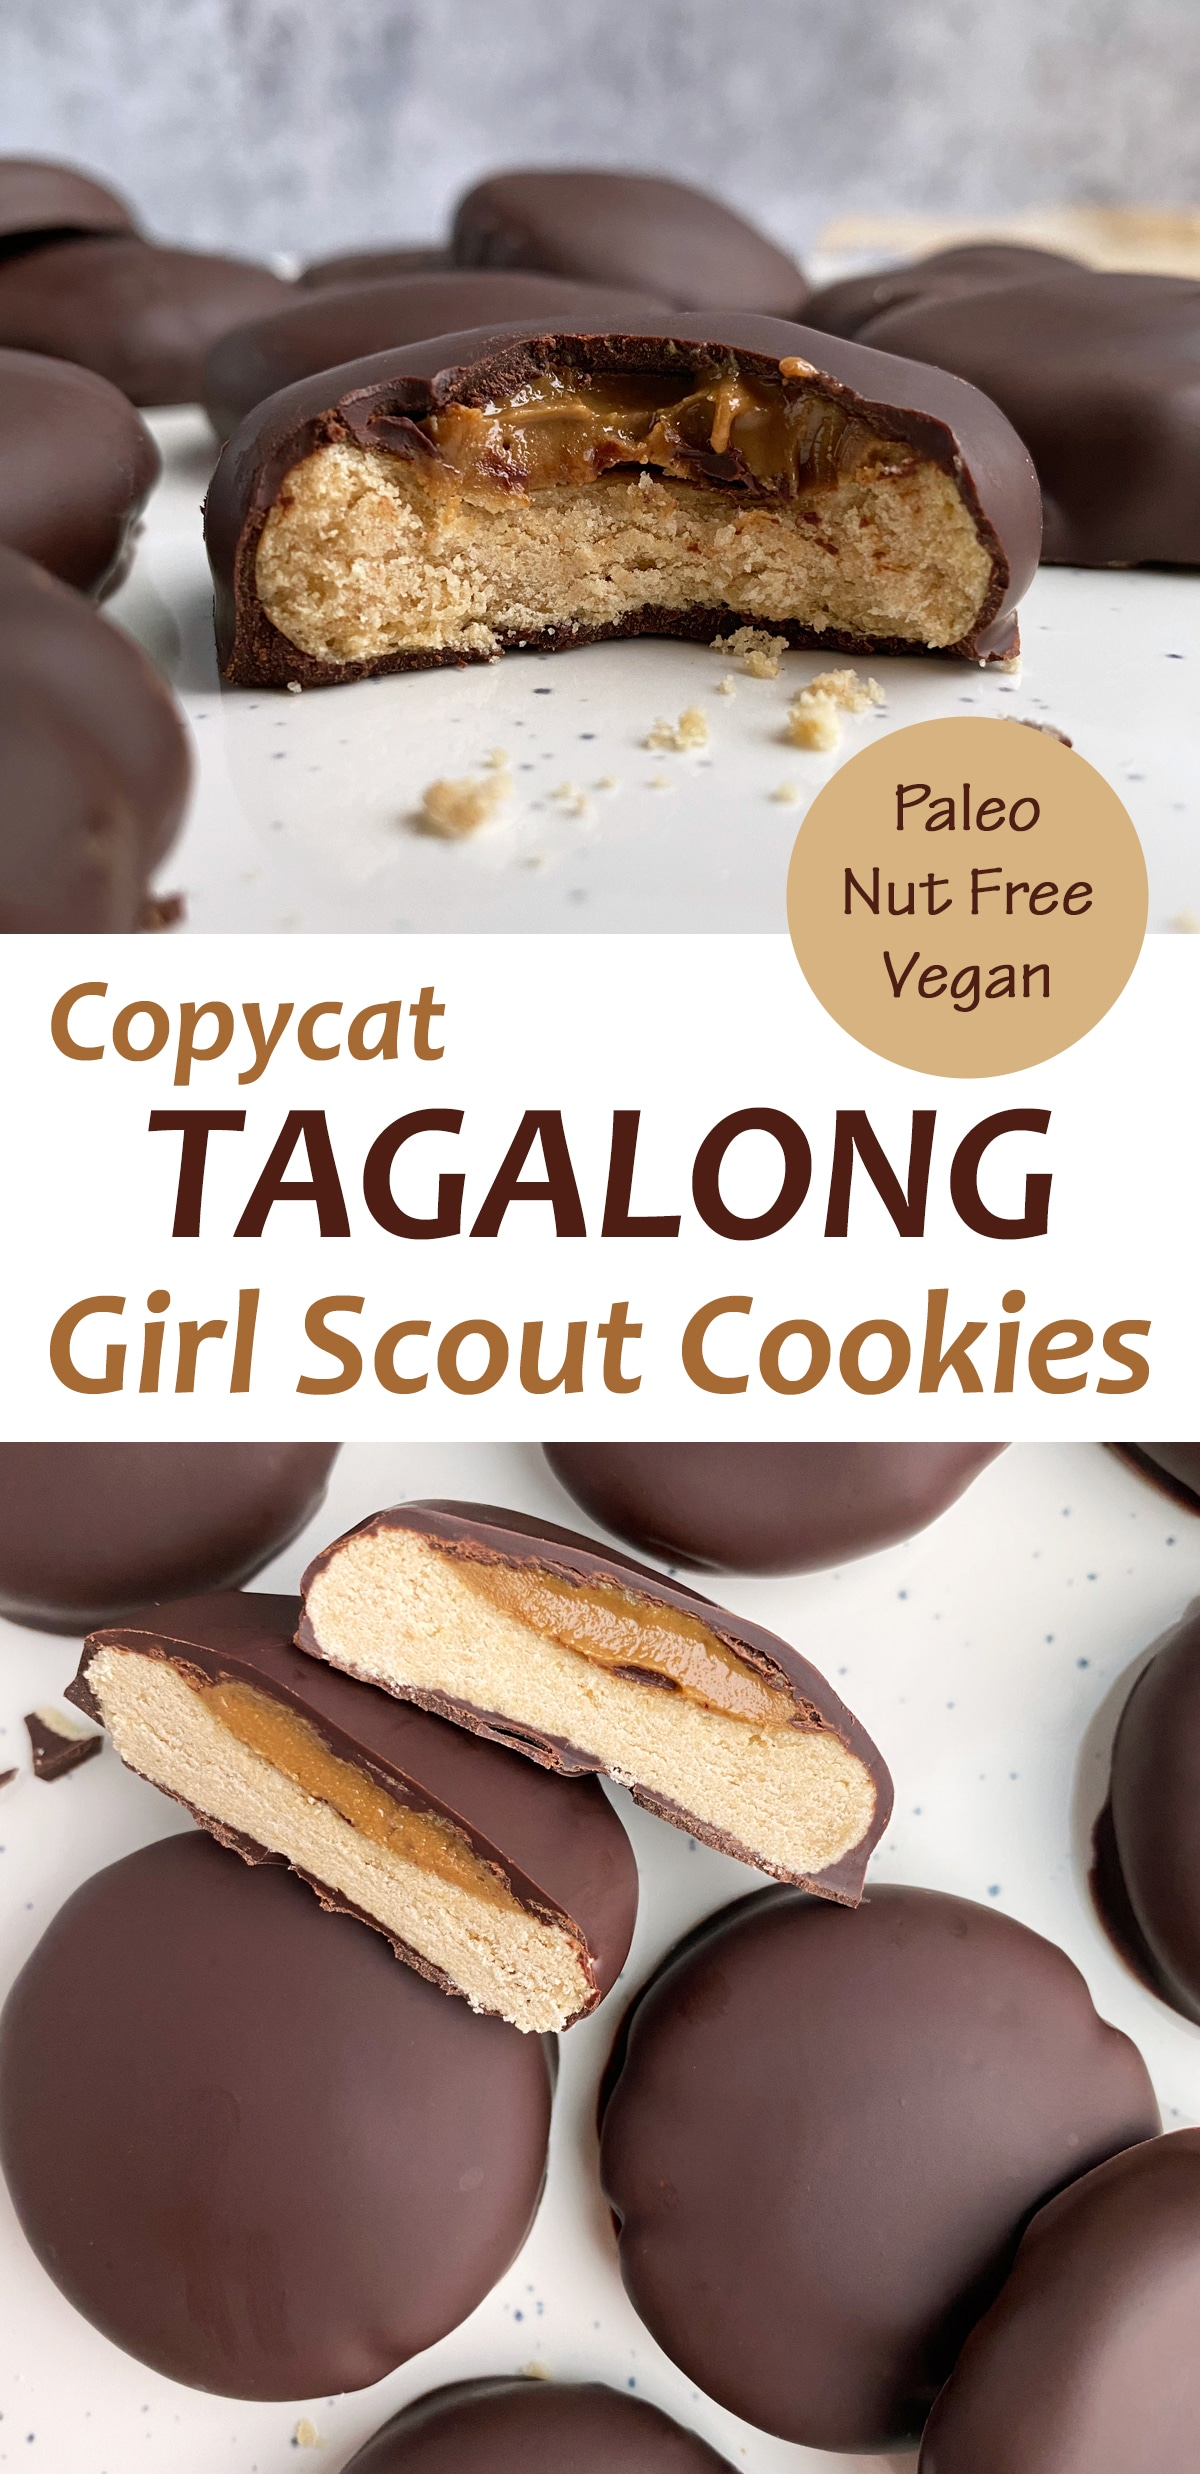 Copycat-Paleo-Tagalong-Girl-Scout-Cookies-Pinterest-Image